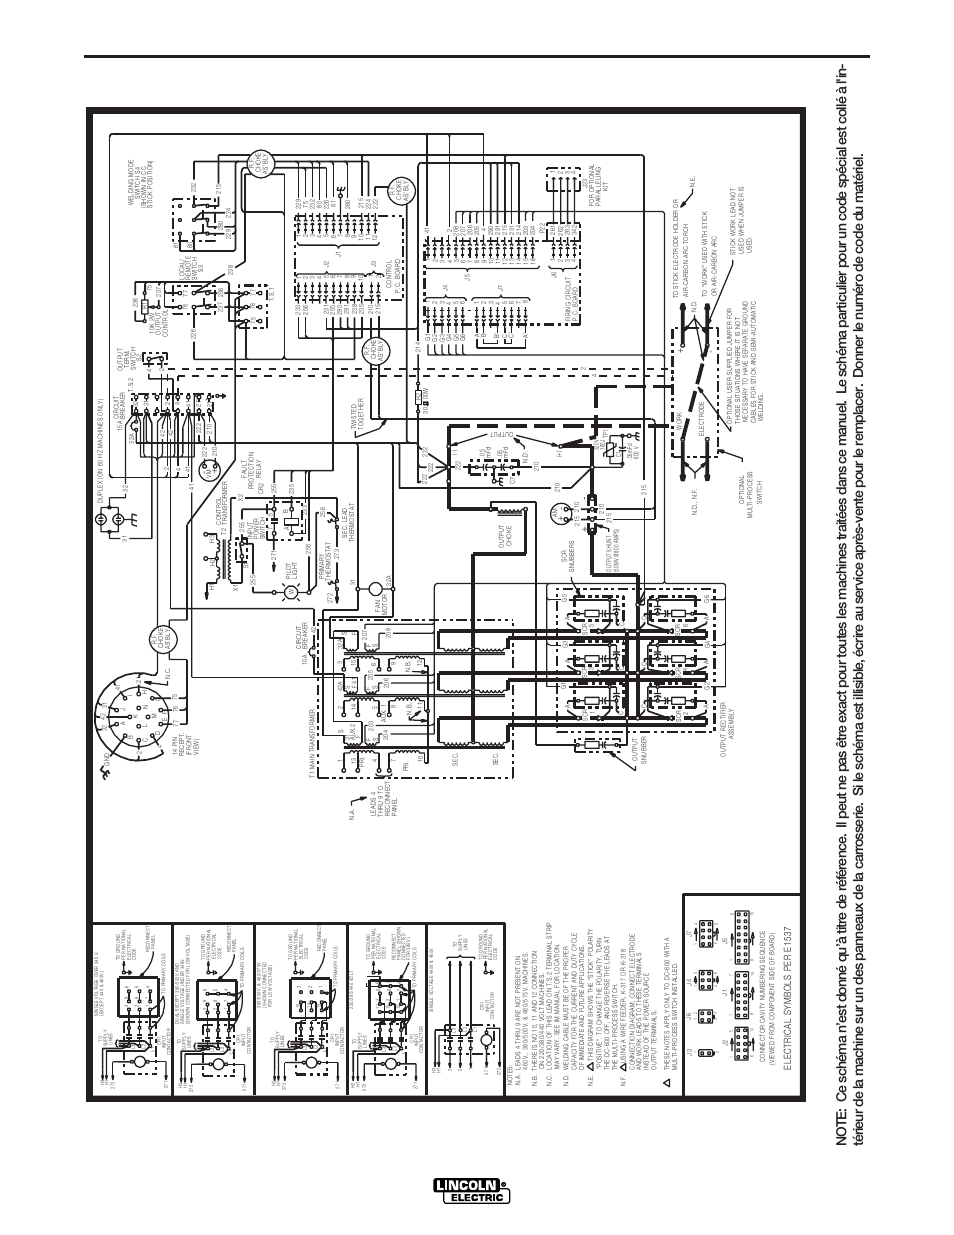 Wiring A 220 Well Pump. Diagrams. Wiring Diagram Gallery